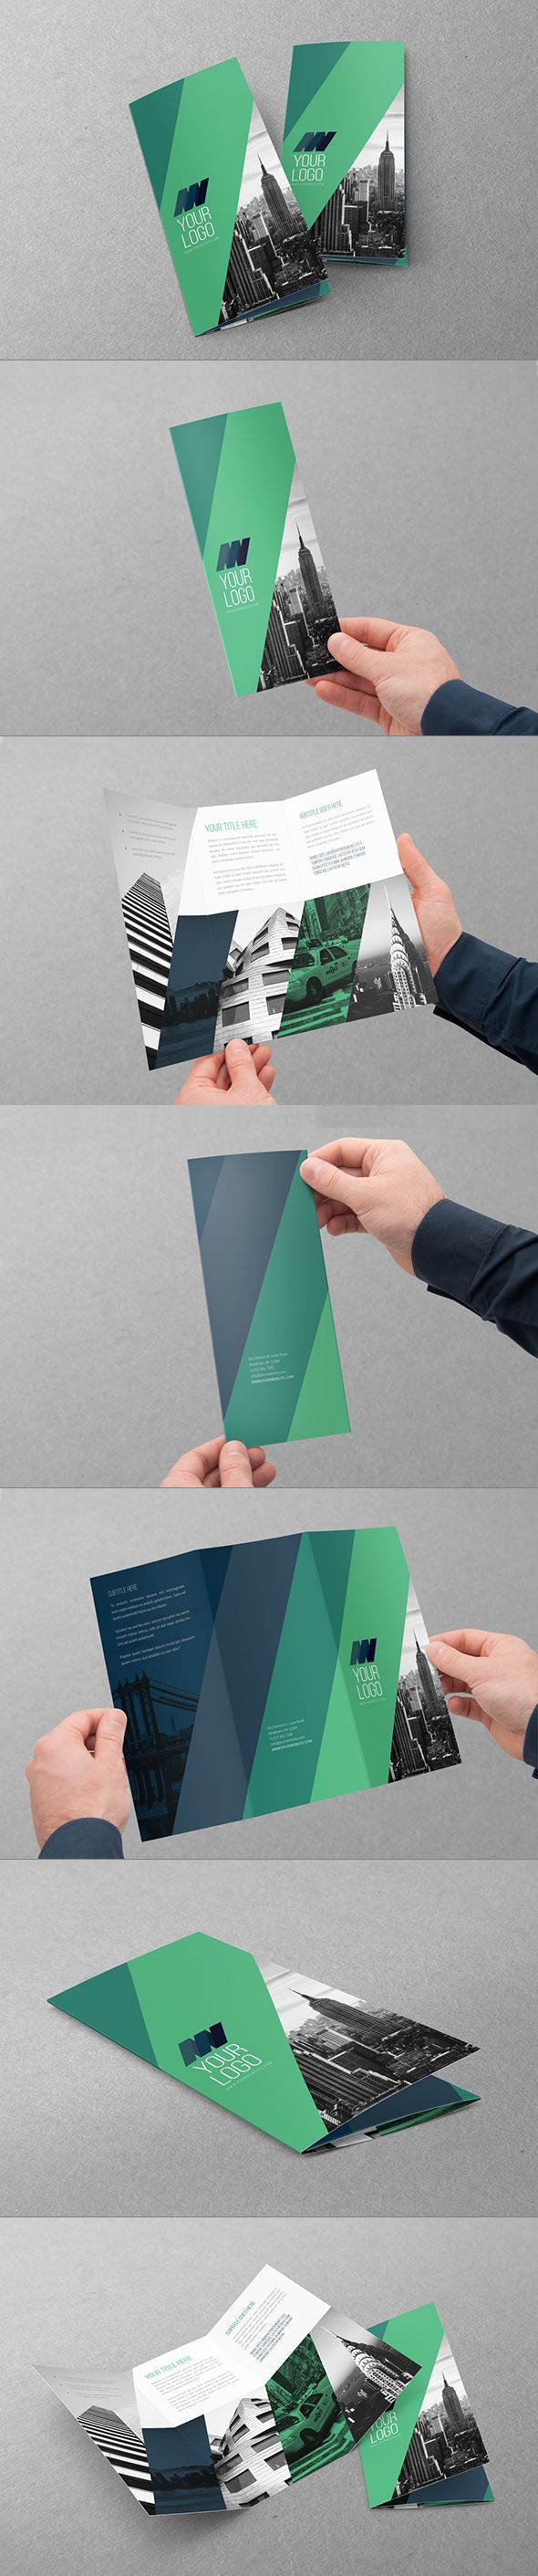 Clean Modern Green Blue Trifold. Download here: http://graphicriver.net/item/clean-modern-green-blue-trifold/11225278?ref=abradesign #trifold #brochure #design